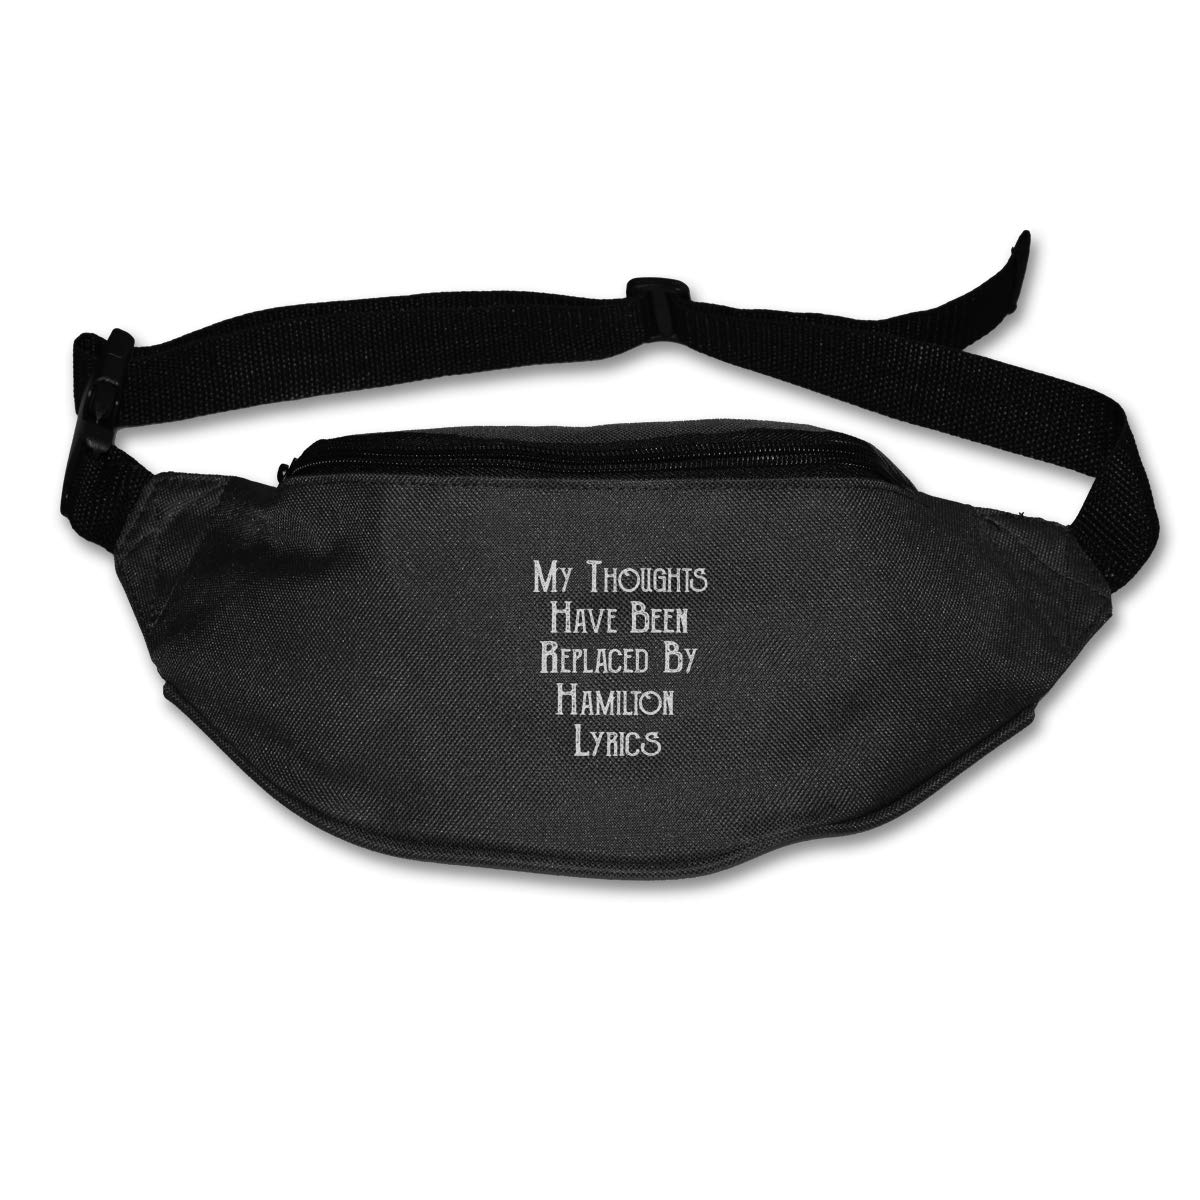 My Thoughts Replaced By Hamilton Lyrics Sport Waist Pack Fanny Pack For Run